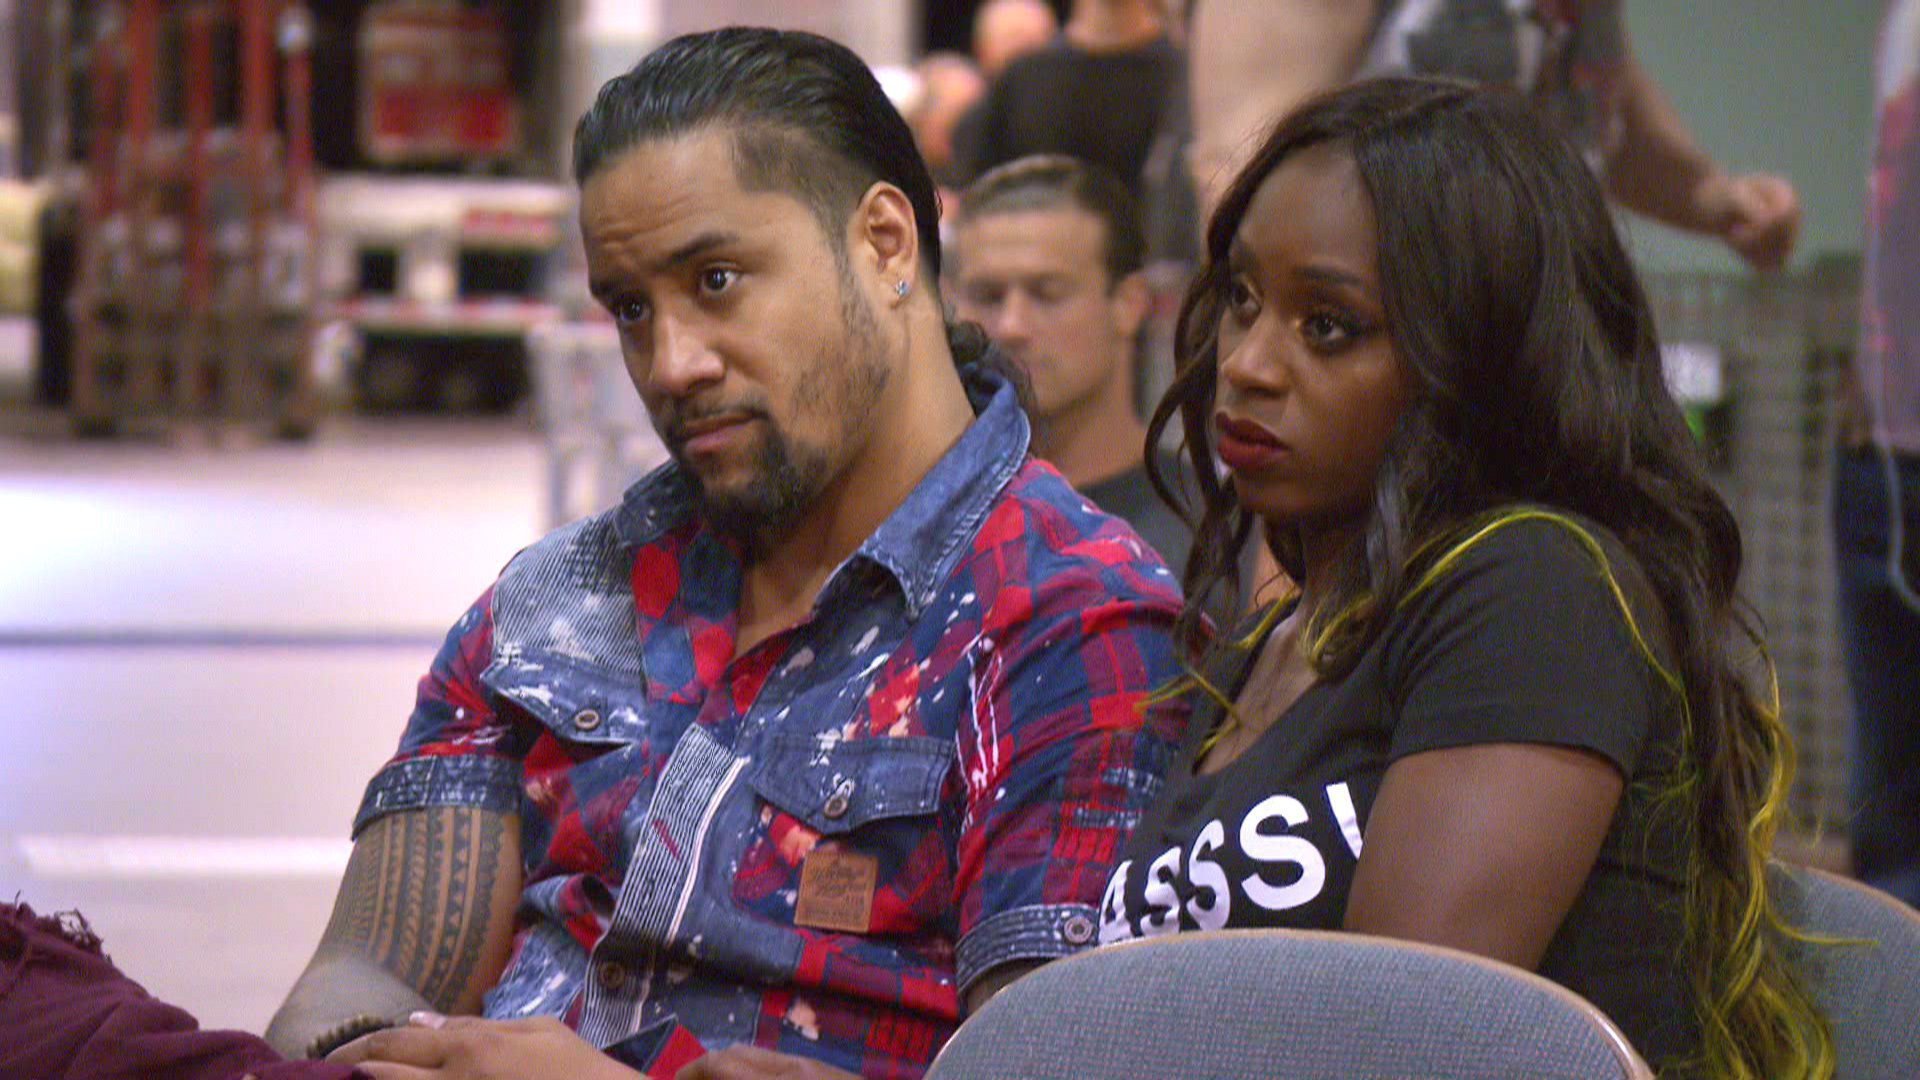 Jimmy Uso and Naomi are still sweating out the results when they wait for their numbers to be called.